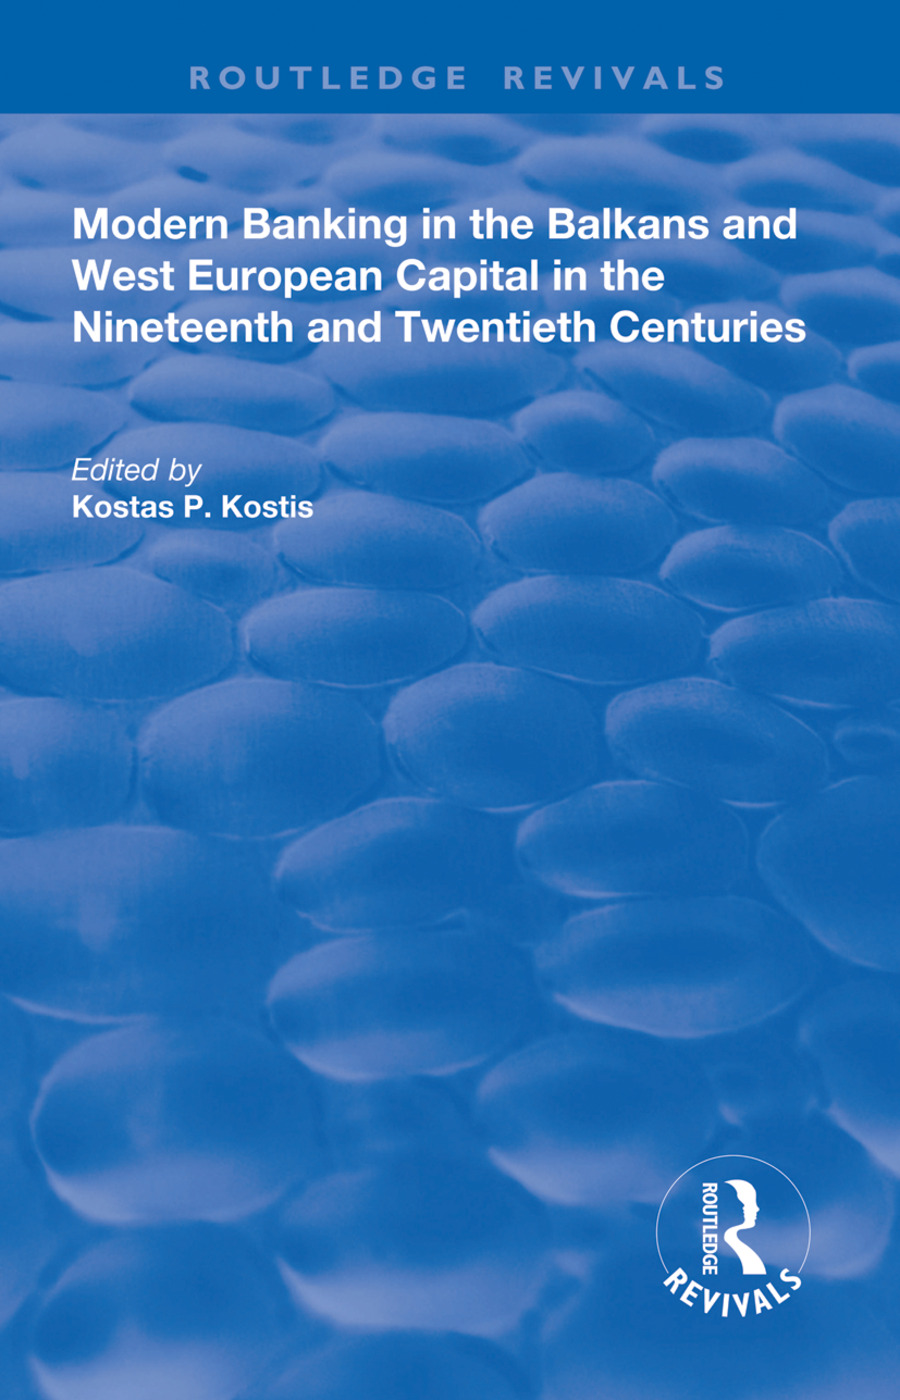 Modern Banking in the Balkans and West-European Capital in the 19th and 20th Centuries book cover